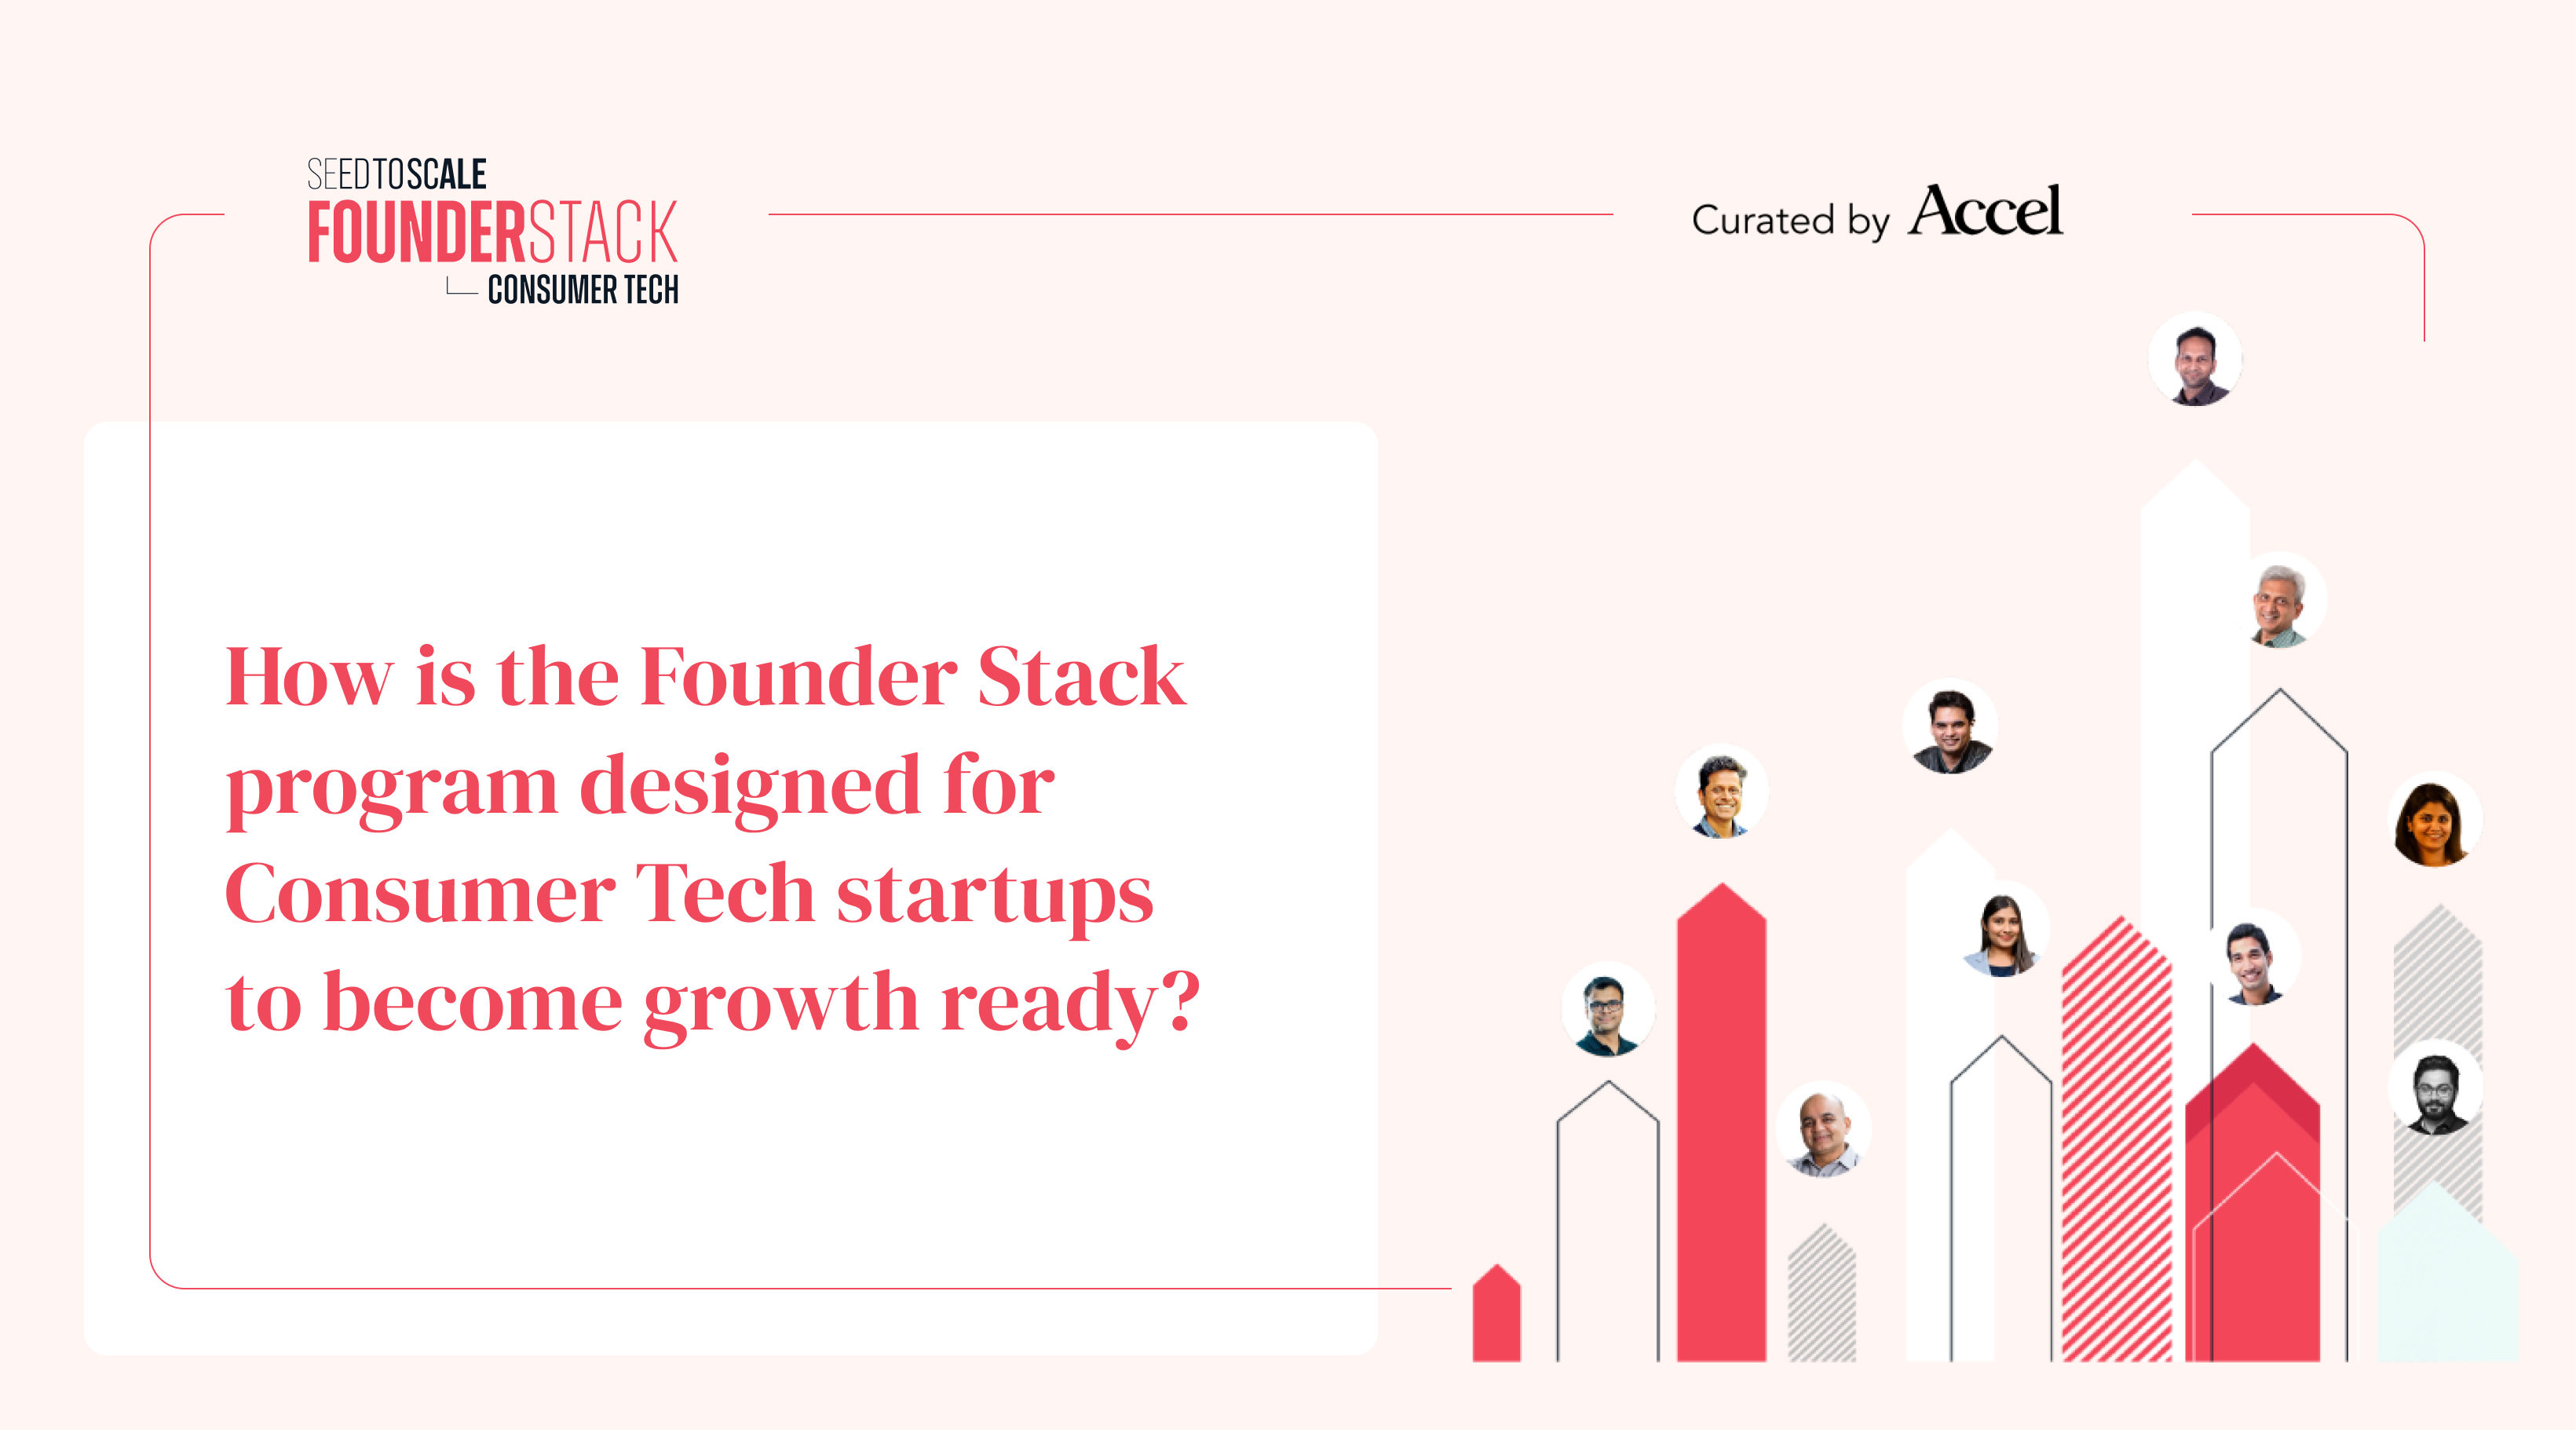 How is the Founder Stack Program designed for Consumer Tech startups to become growth ready?